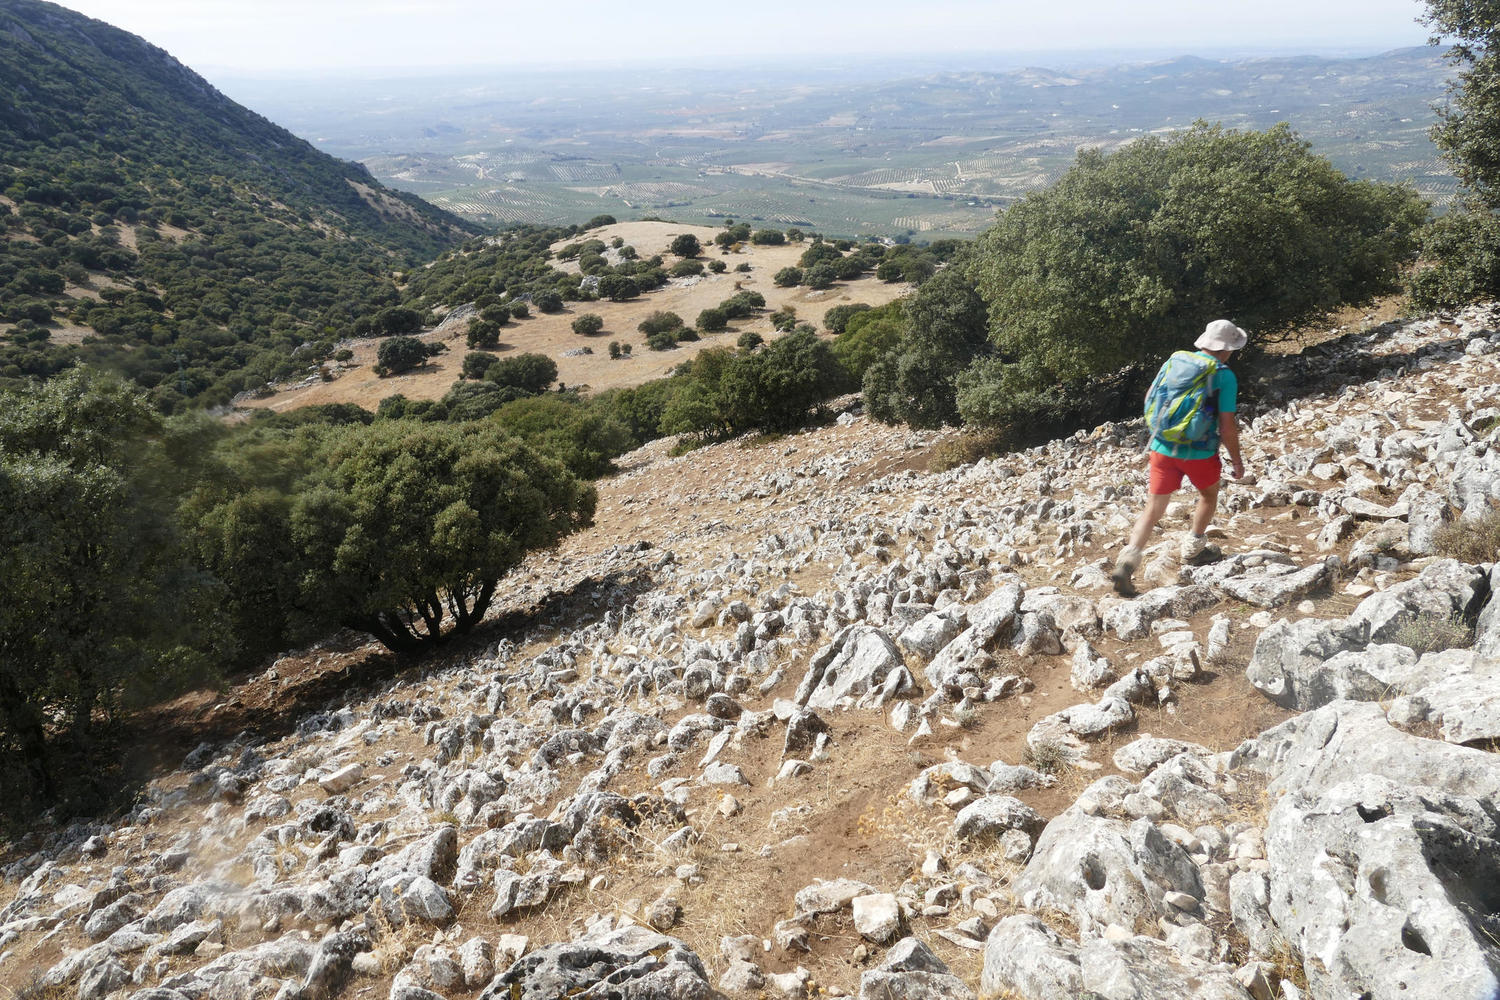 Traversing the karstic limestone landscapes of the Subbeticas natural park